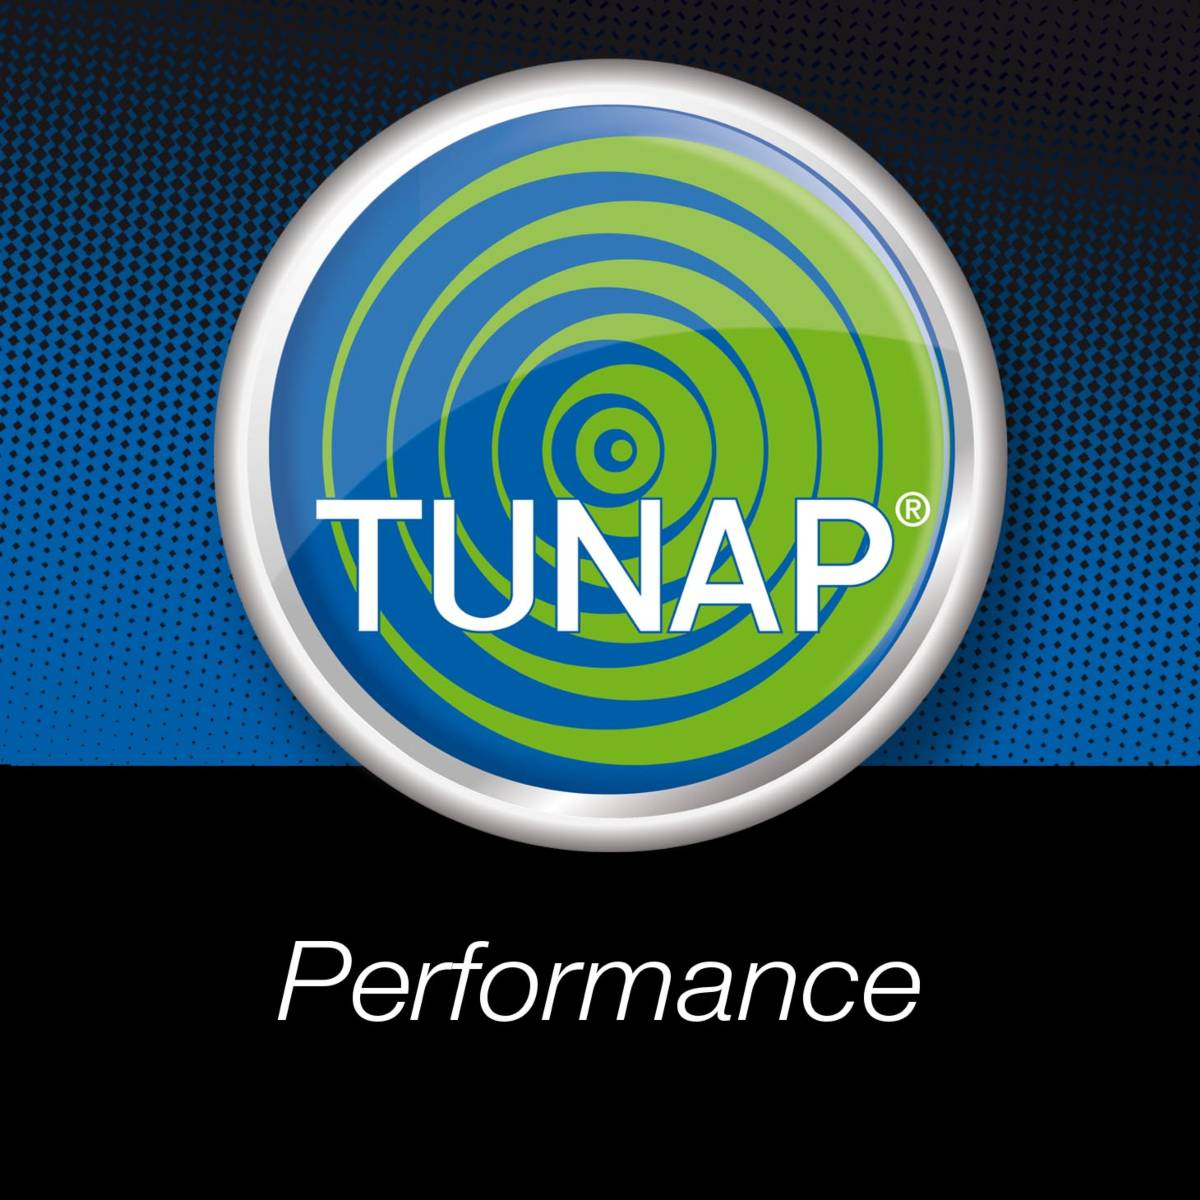 TUNAP Performance Line